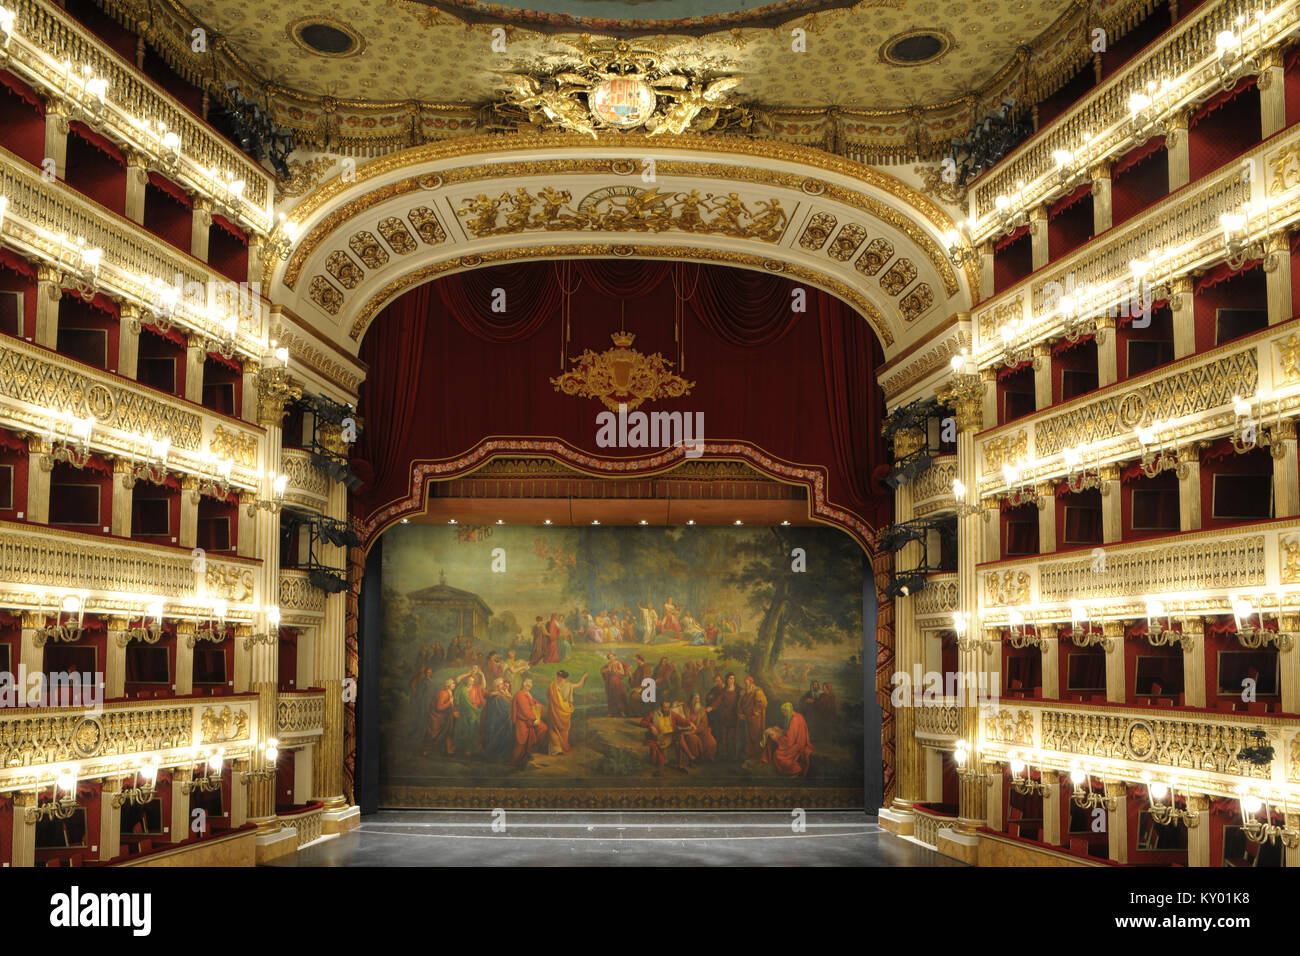 Antonio Niccolini Stock Photos & Antonio Niccolini Stock Images - Alamy